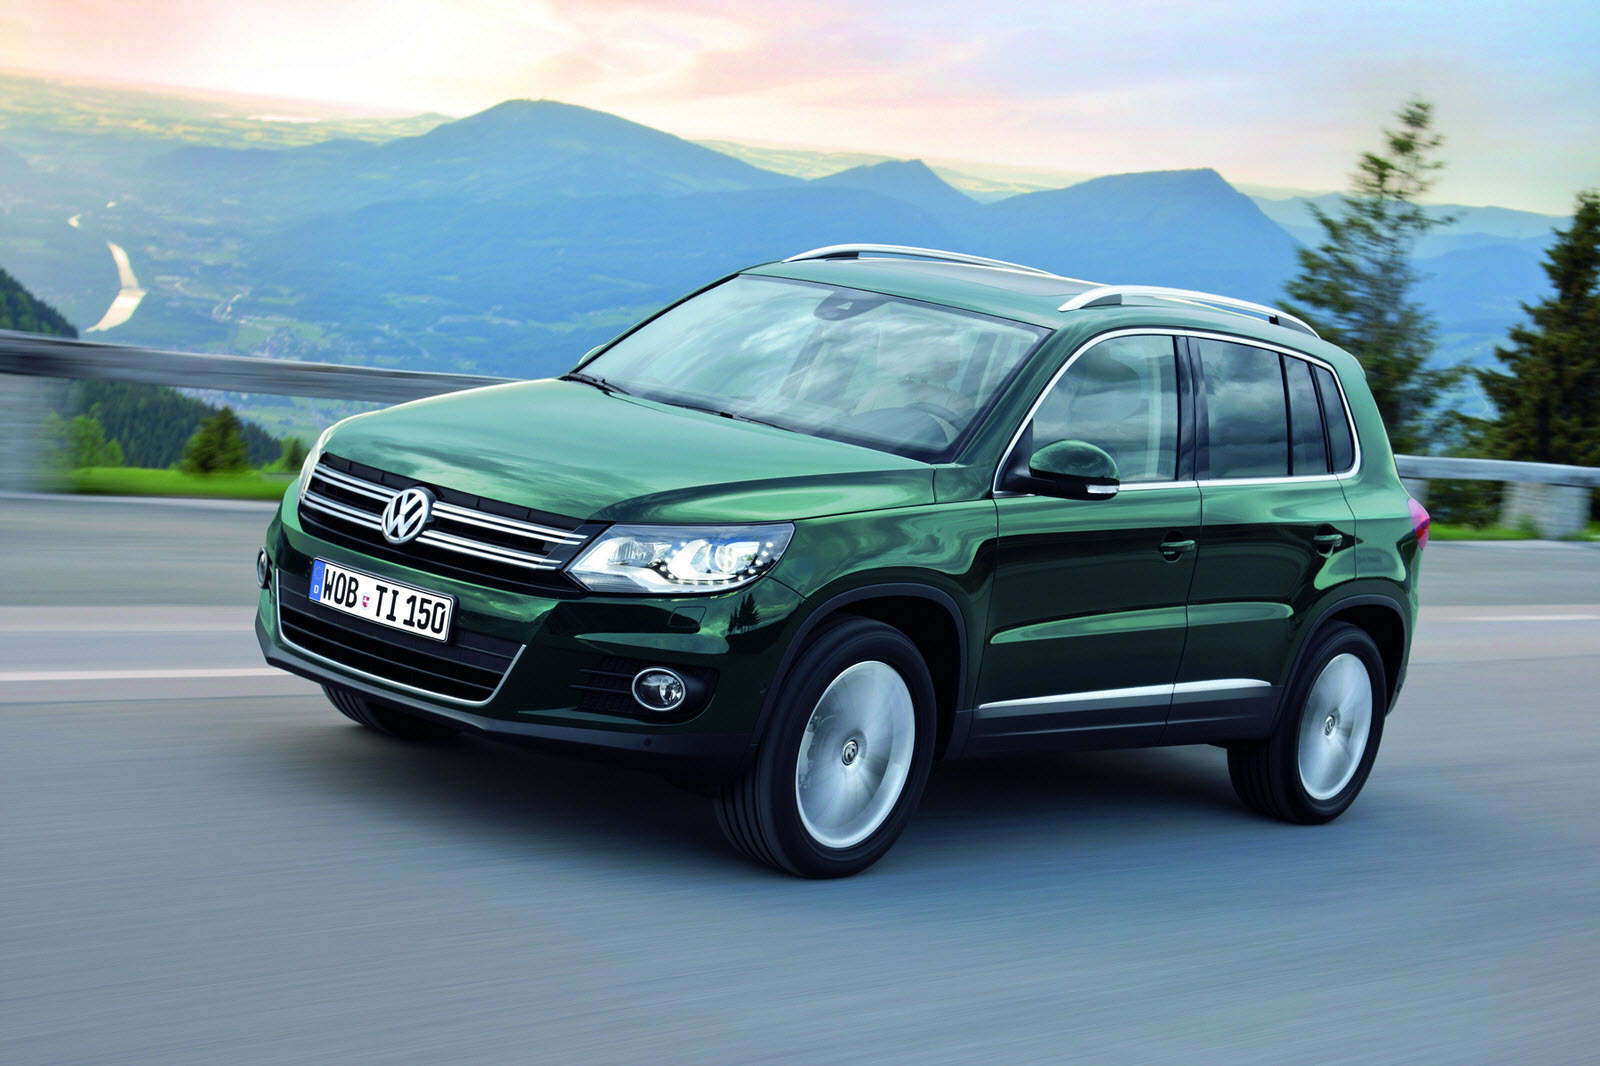 new volkswagen tiguan new front end of touareg new engines new assistance systems. Black Bedroom Furniture Sets. Home Design Ideas